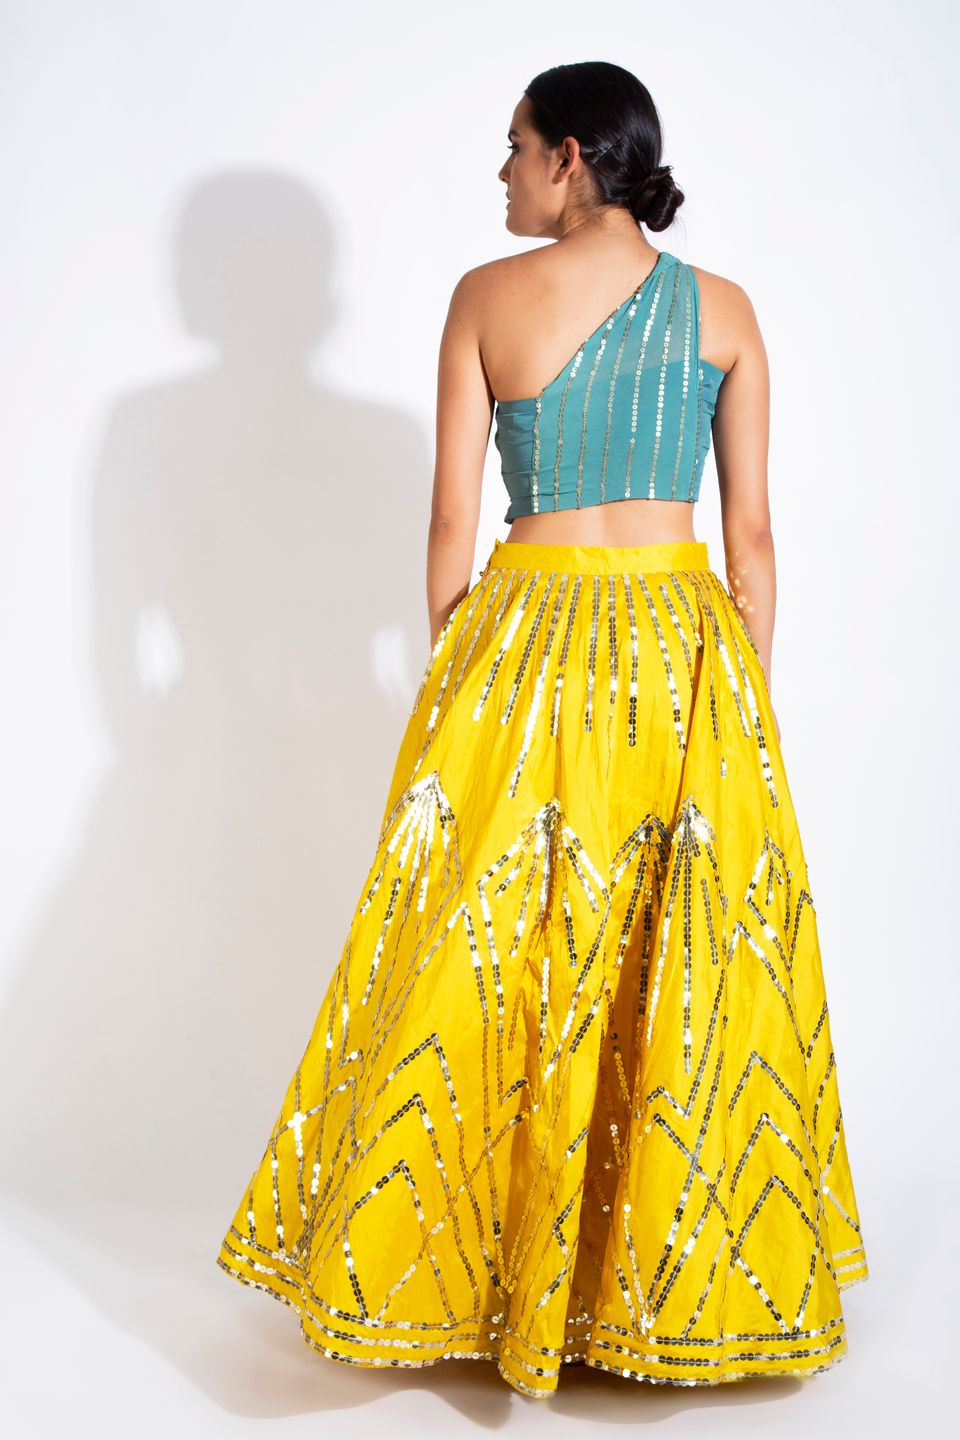 Sunflower Yellow Embellished Skirt & Teal Green Crop Top BACK